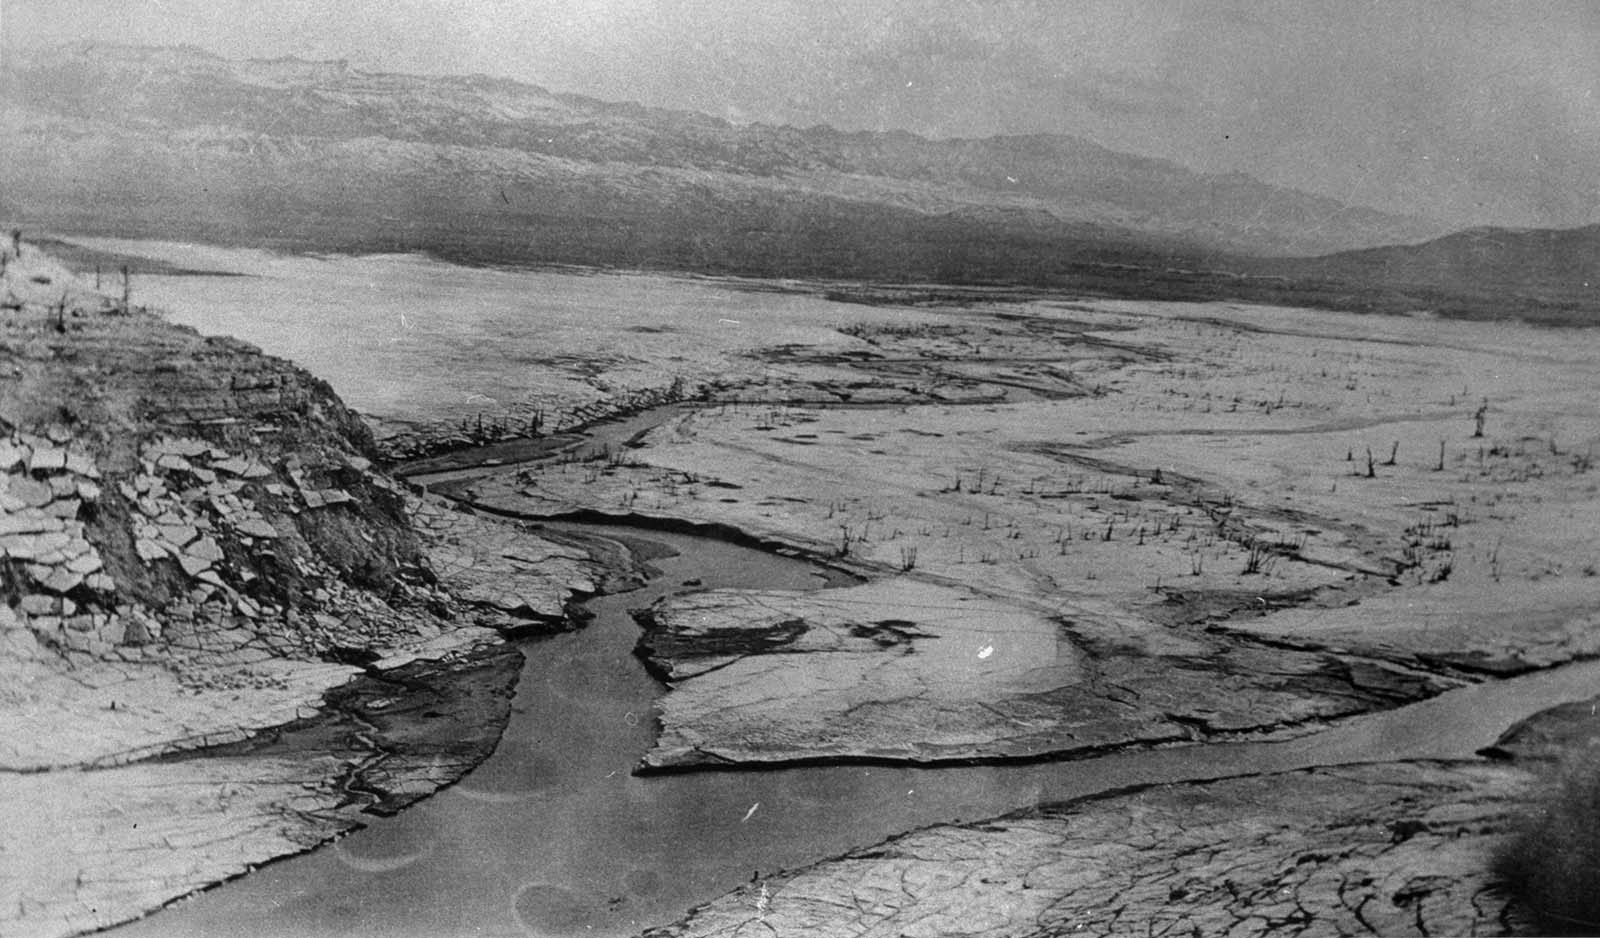 Shoshone Irrigation Company partners hoped the Shoshone River - shown here before the Buffalo Bill Dam - could irrigate lands downstream. Jack Richard Collection. MS 89 Jack Richard Photograph Collection, McCracken Research Library. P.89.88